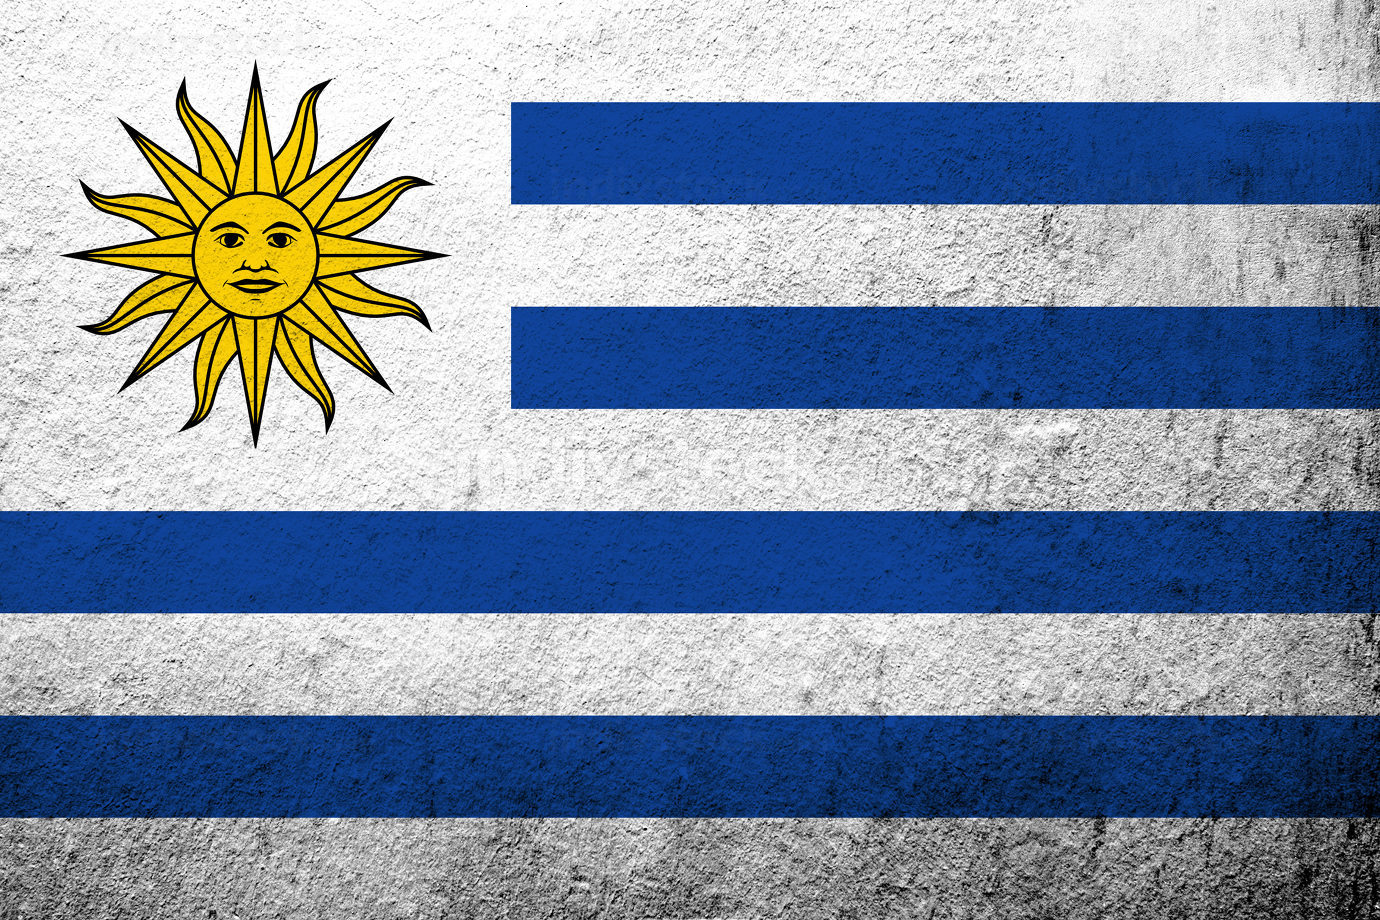 The Oriental Republic of the Uruguay National flag The Sun and Stripes. Grunge background